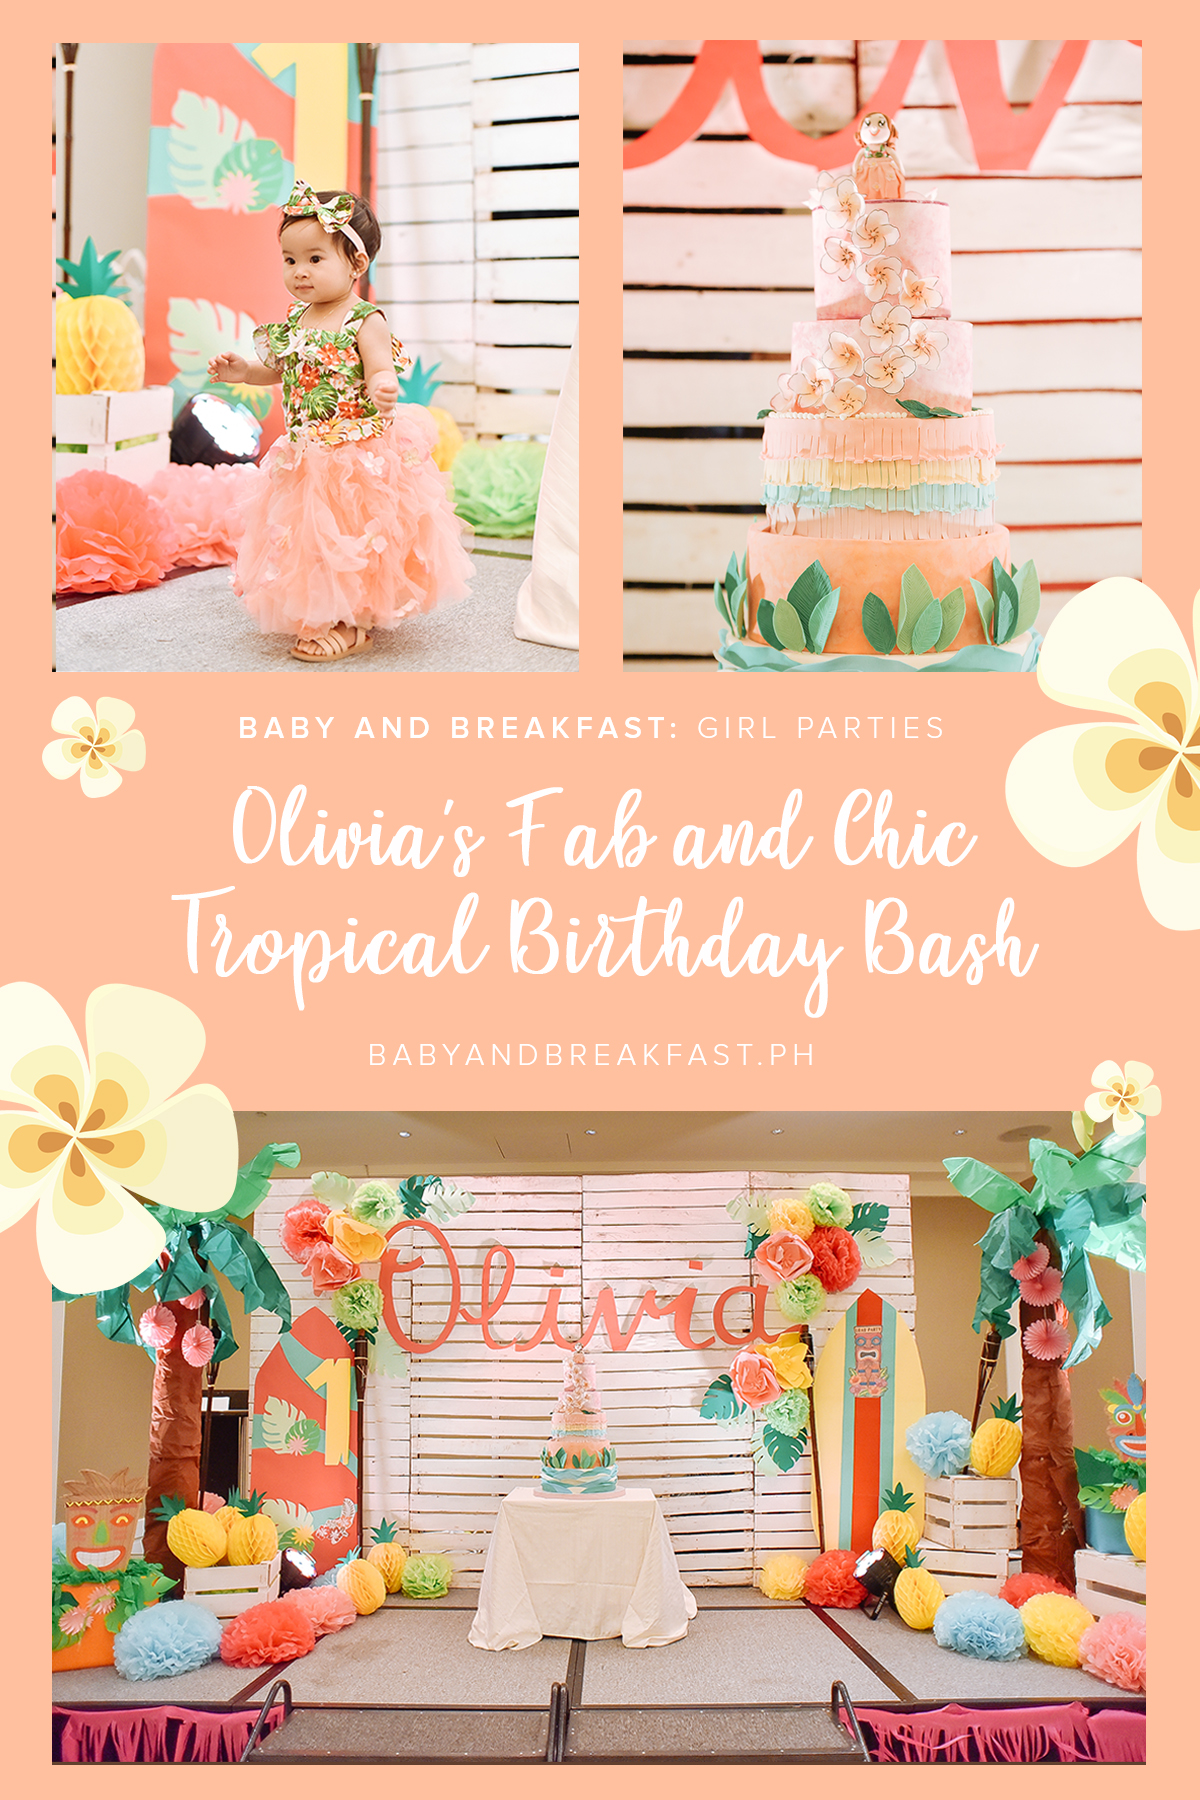 Baby and Breakfast: Girl Parties Olivia's Fab and Chic Tropical Birthday Bash